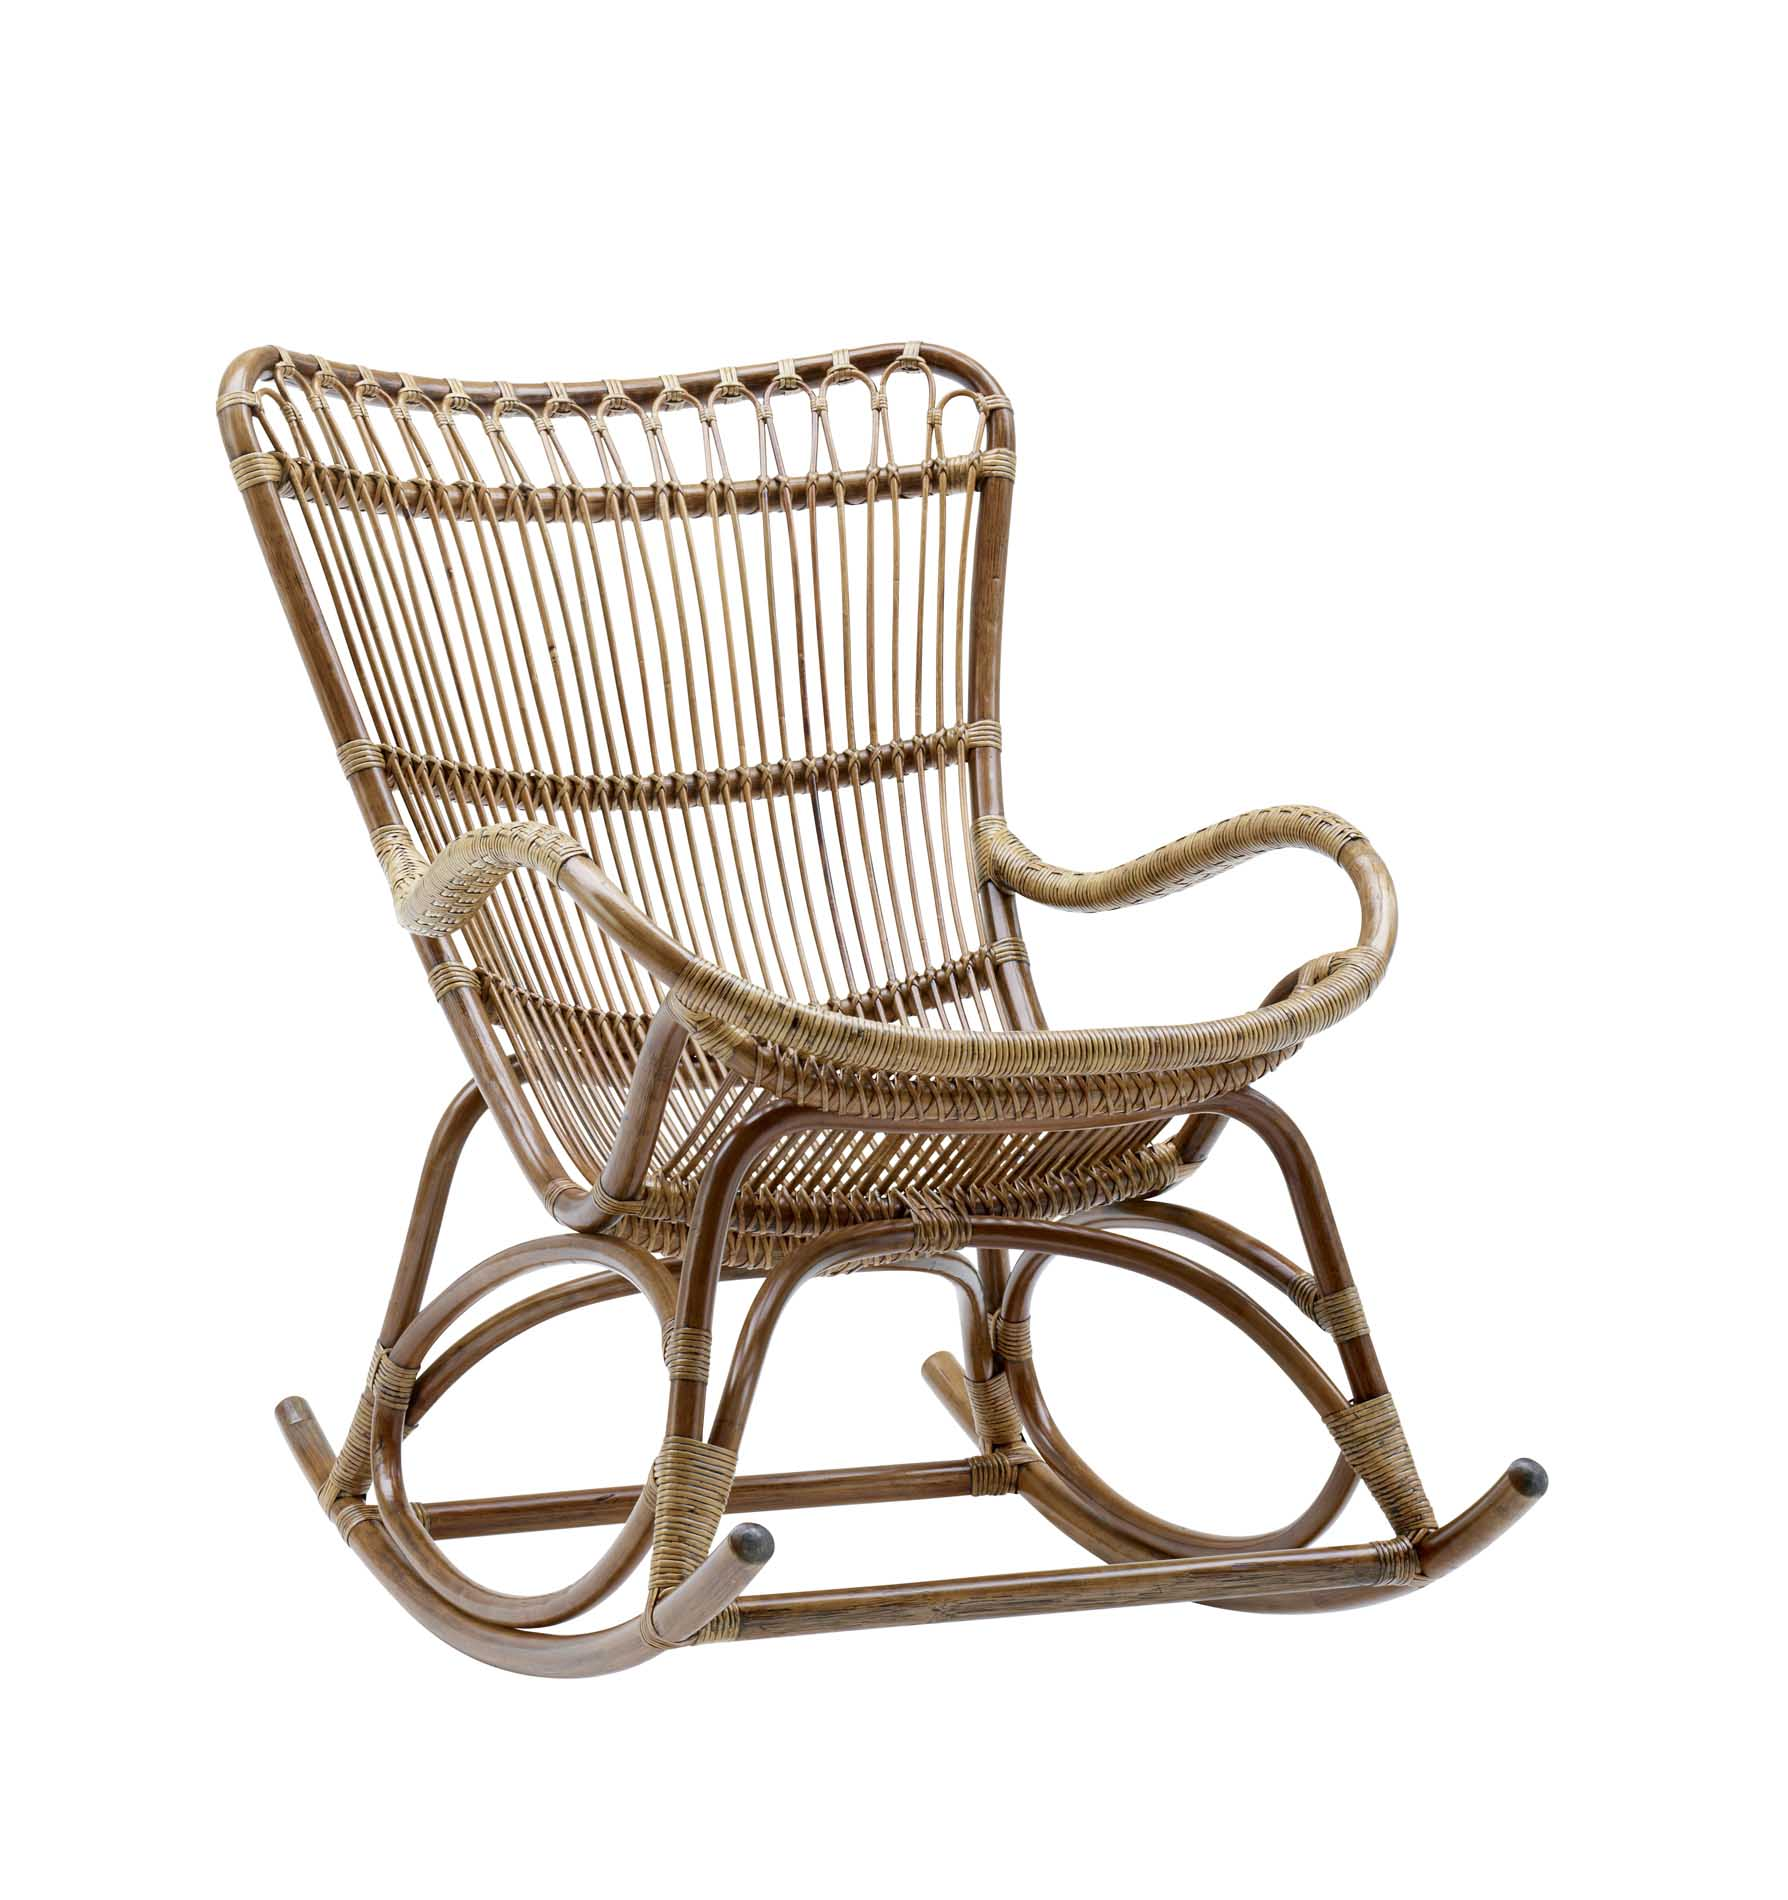 Rocking chair en rotin antique